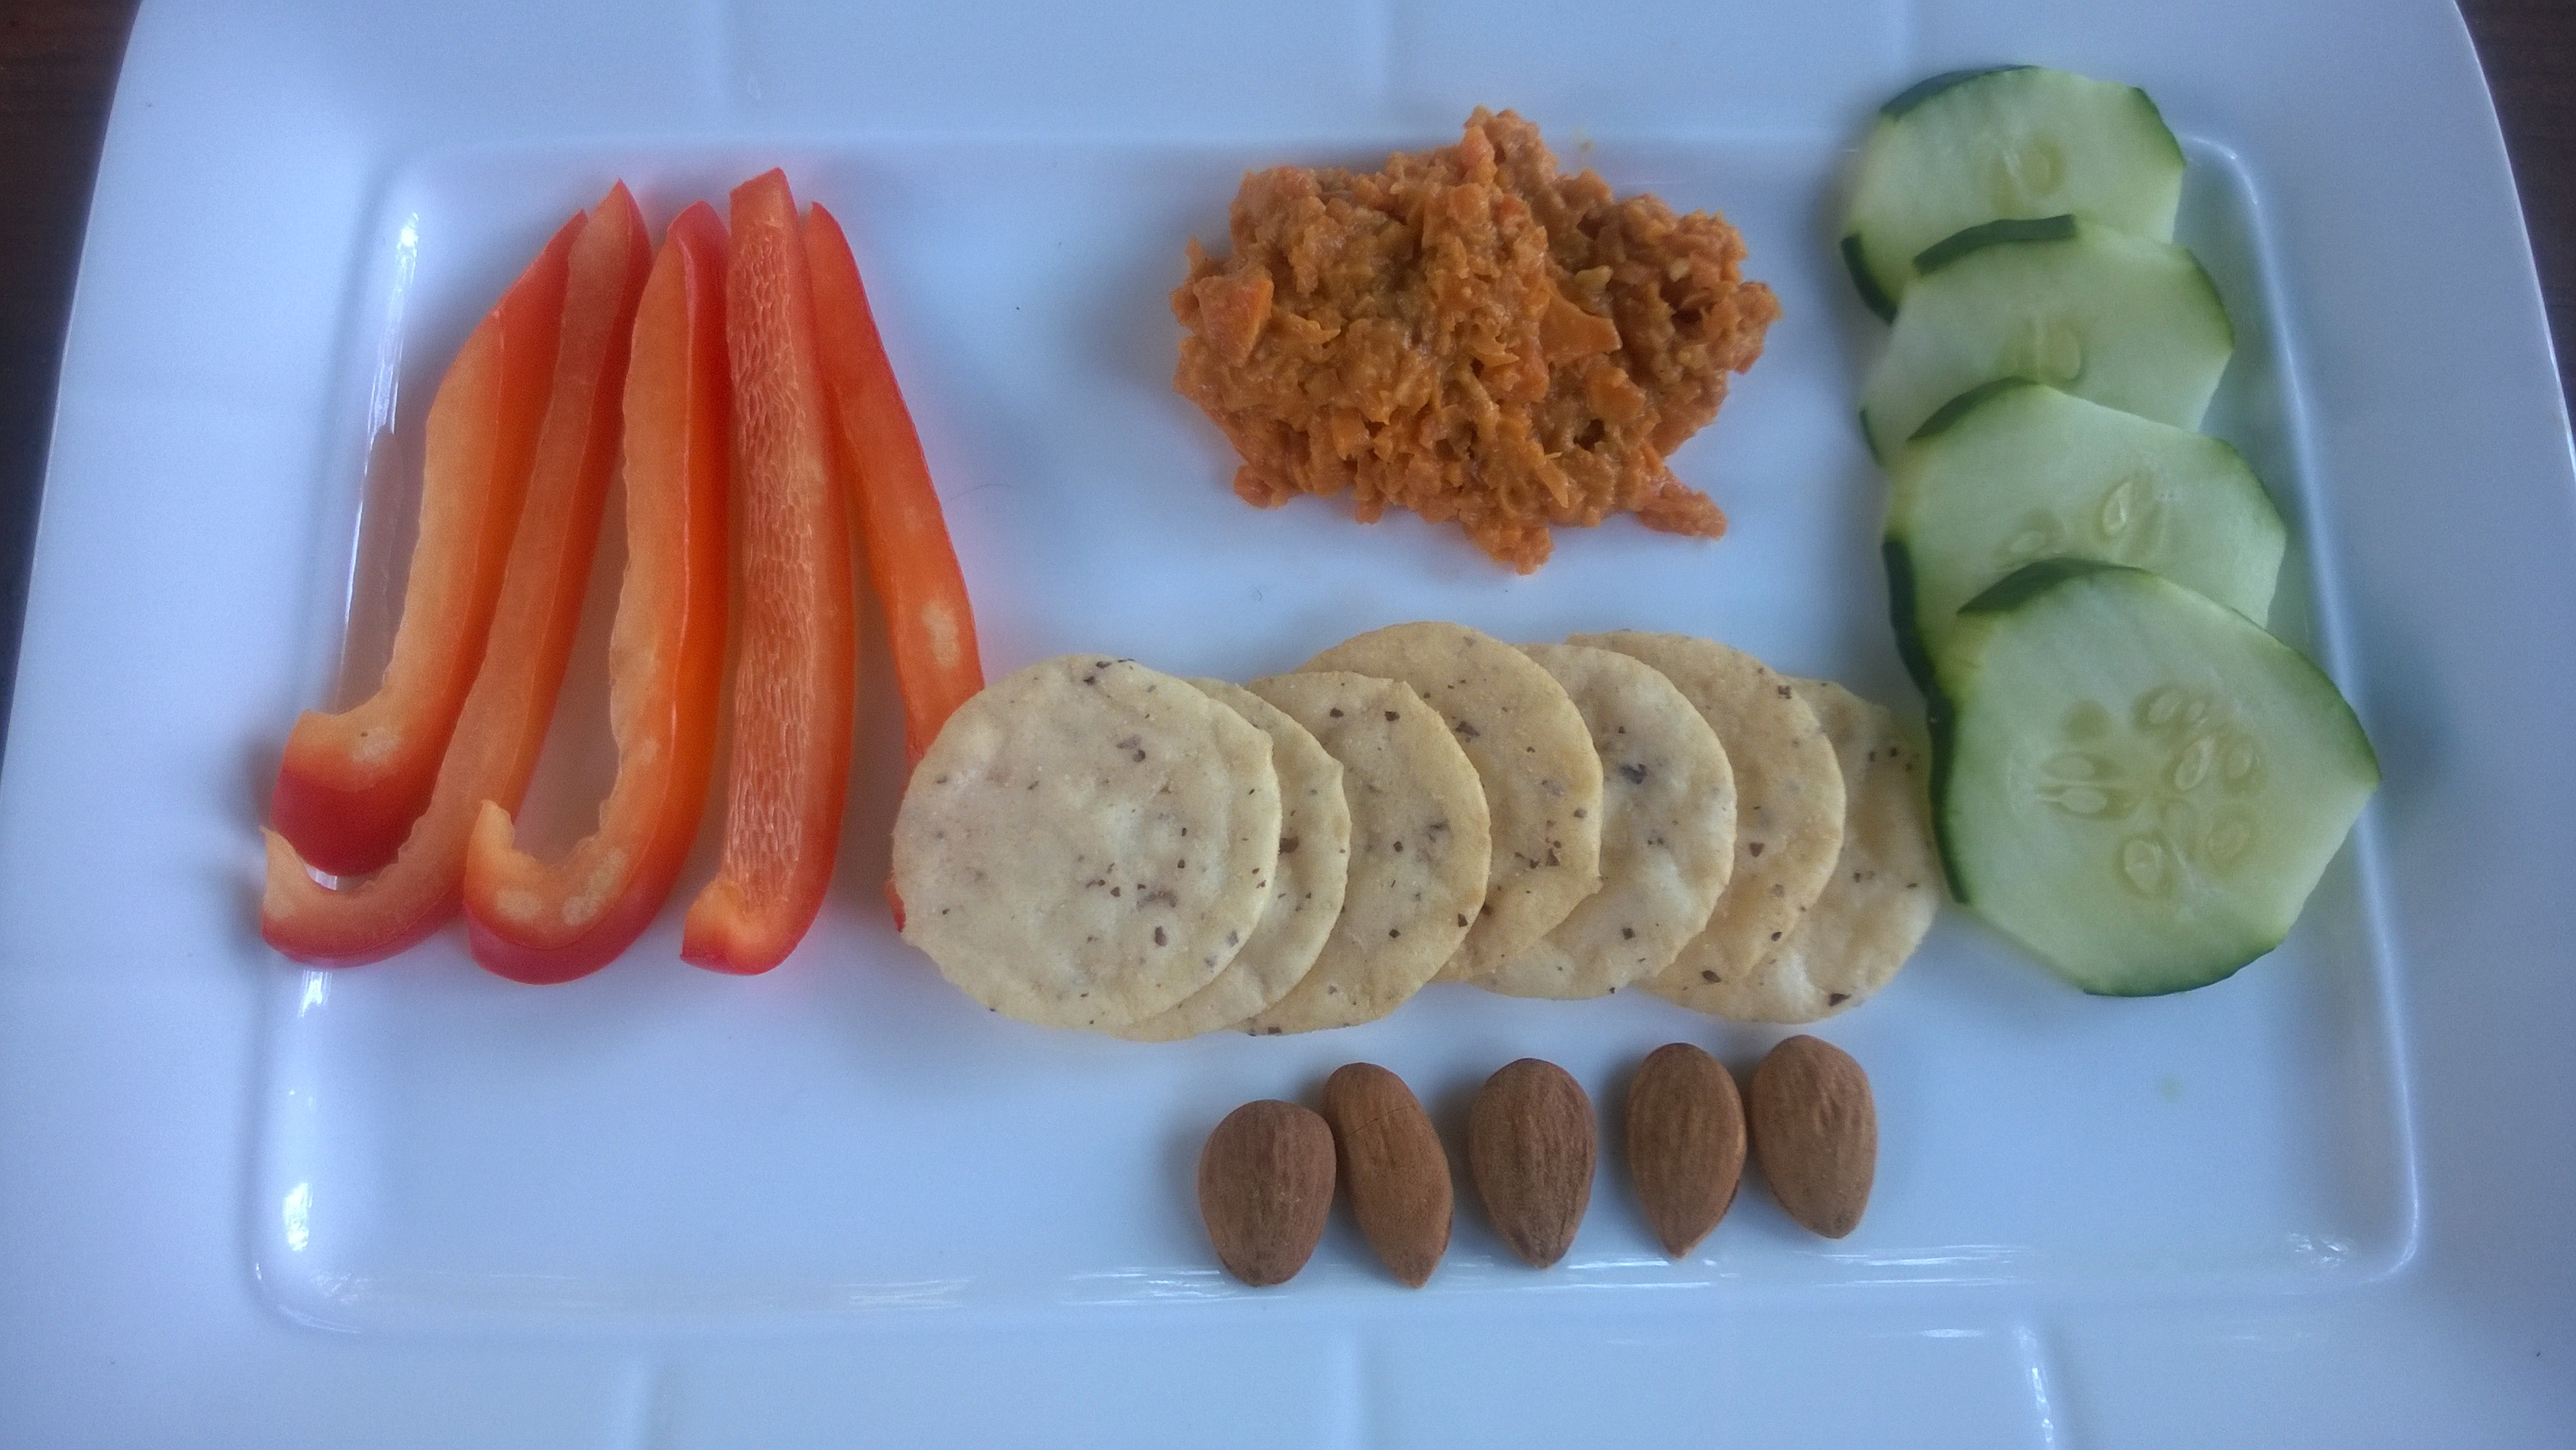 Make a Carrot Dip and serve with Asian inspired fixins!